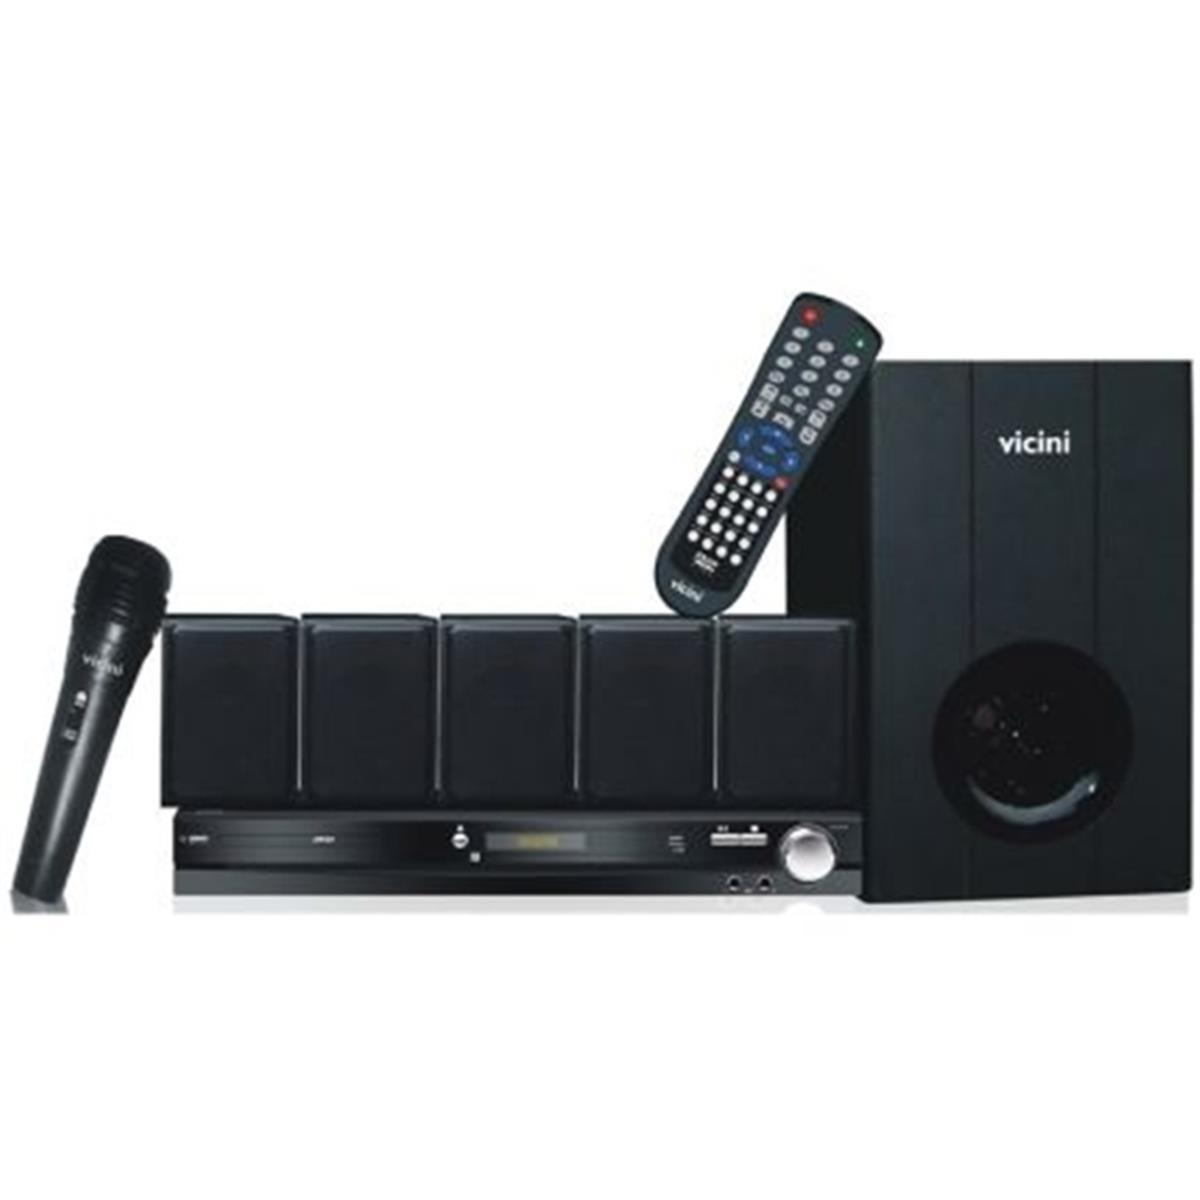 home theater com dvd player usb r dio karaok vc 995 vicini na estrela10 rh estrela10 com br manual home theater vicini vc 990 manual home theater vicini vc 990